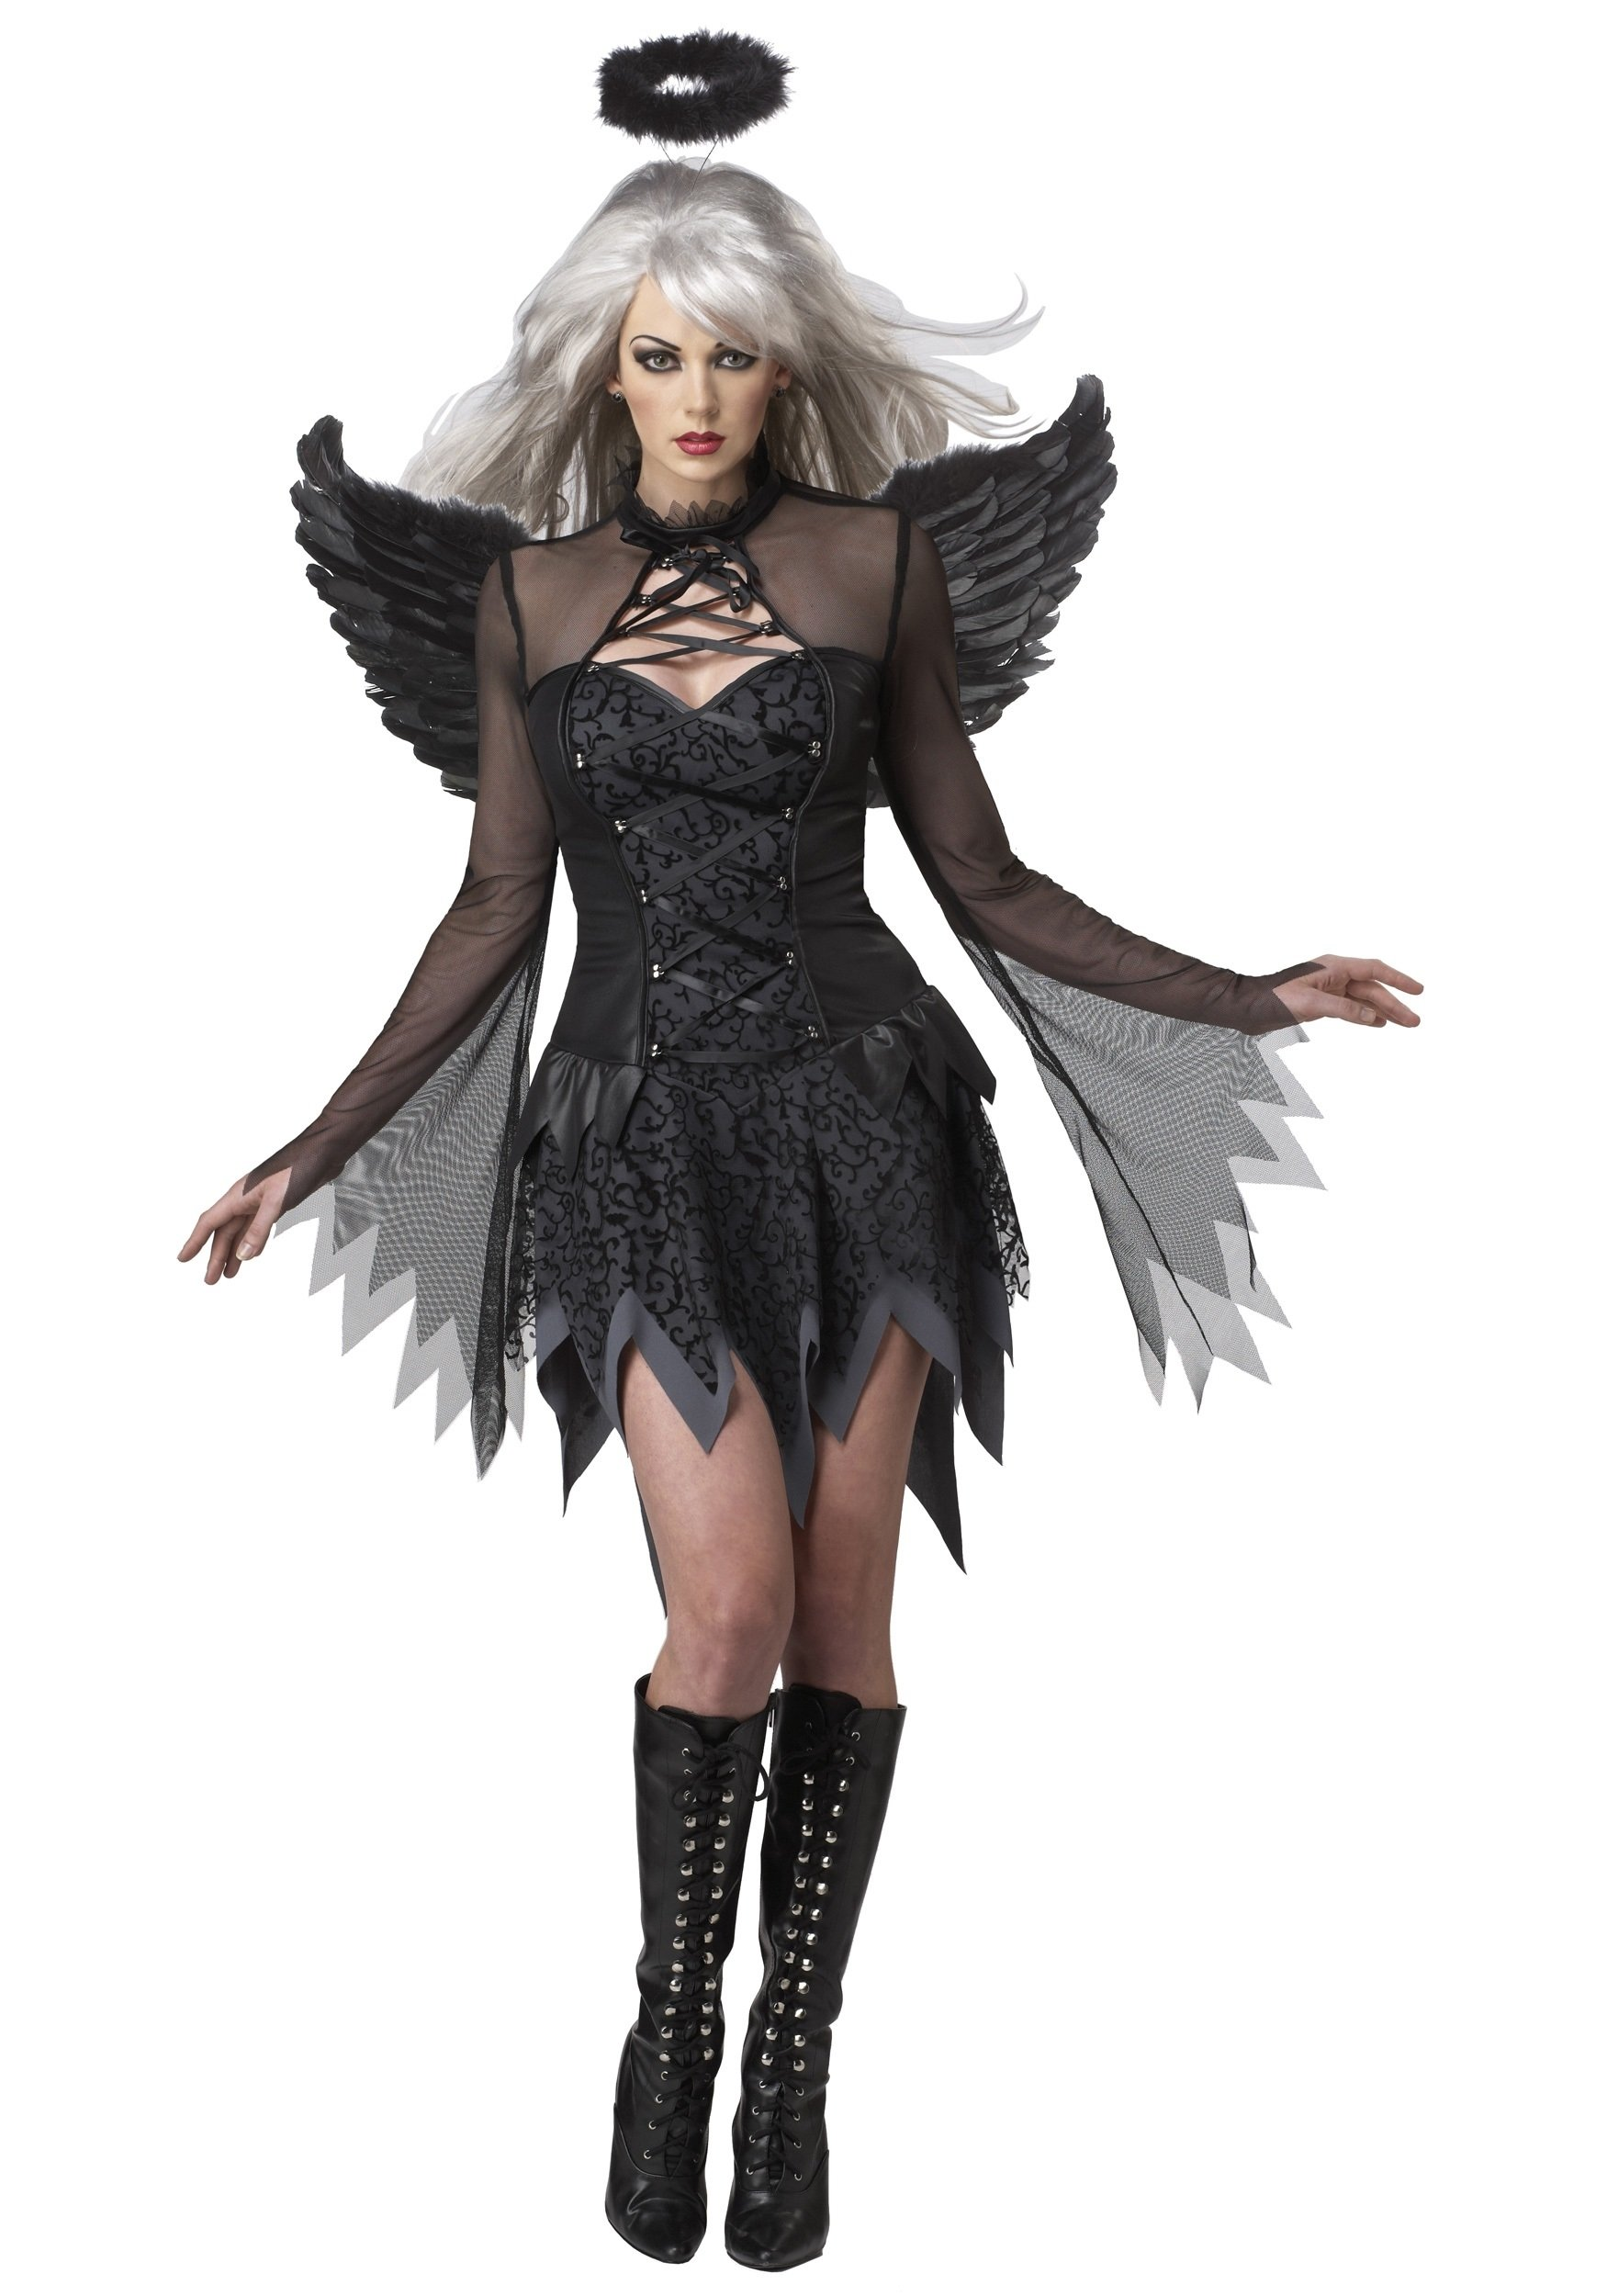 10 Spectacular Scary Halloween Costume Ideas For Women scary adult costumes adult scary halloween costume ideas 3 2020